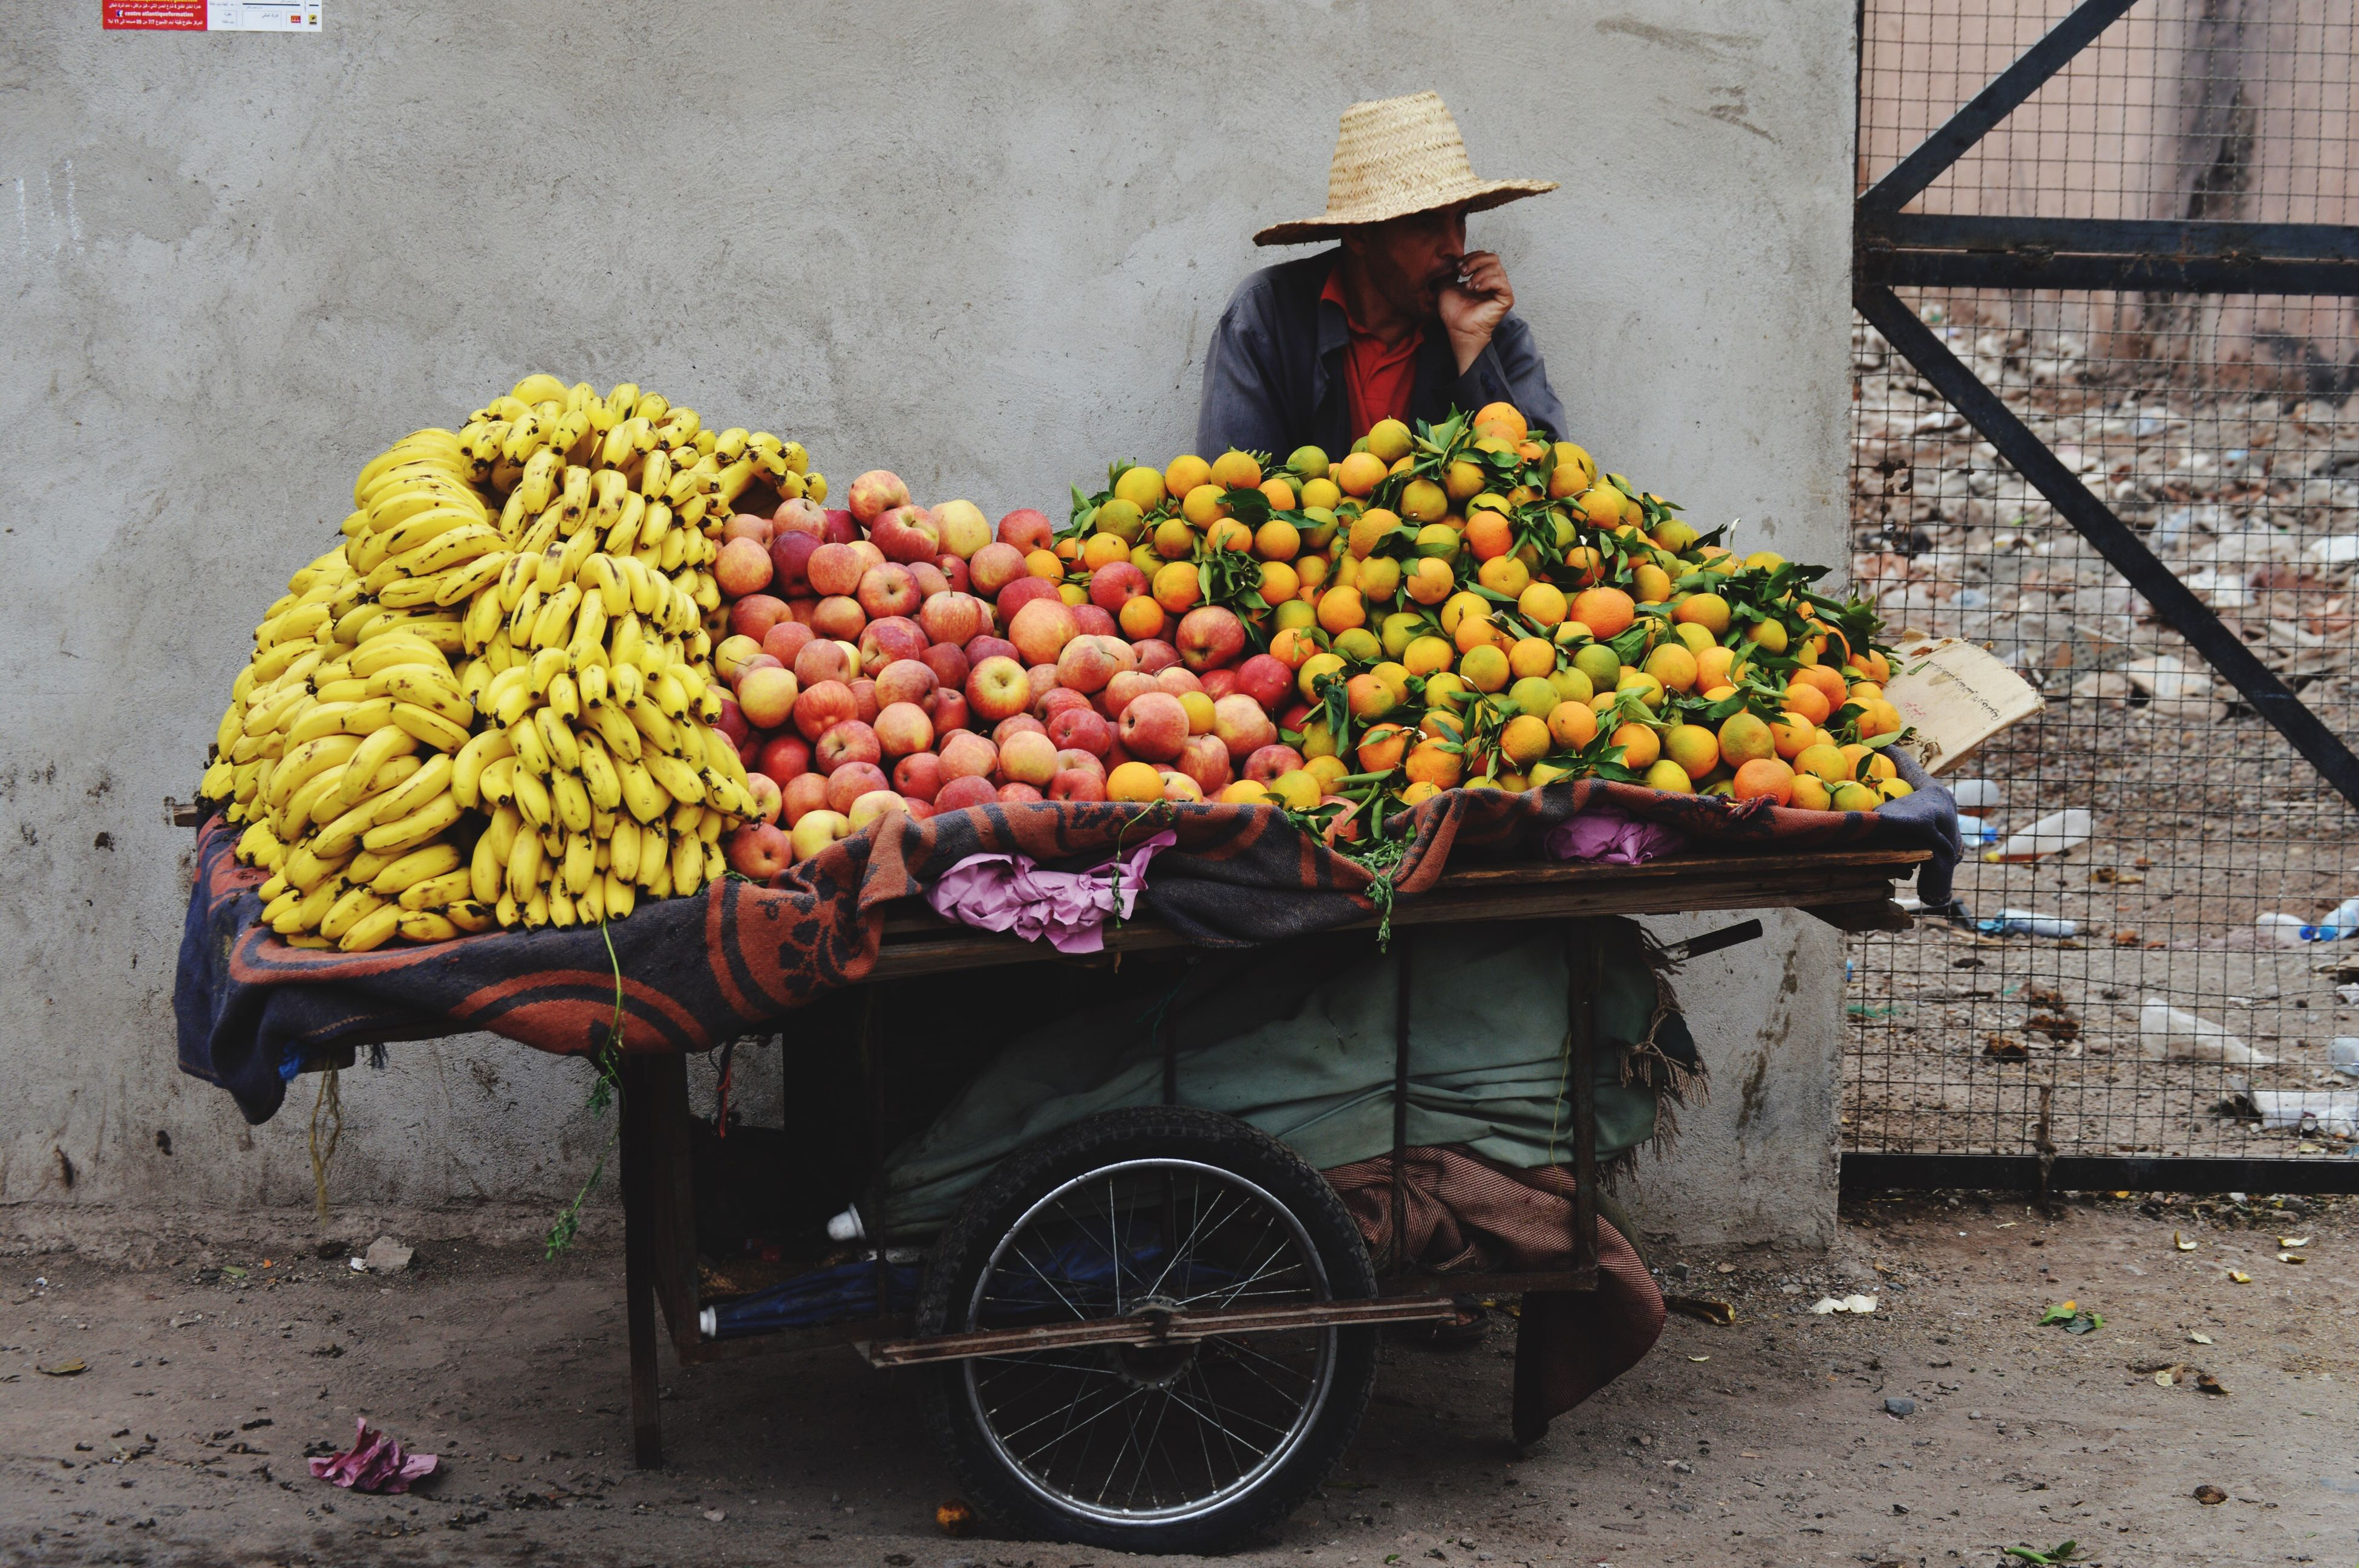 fruit, real people, transportation, one person, food, outdoors, mode of transport, bicycle, freshness, day, bicycle basket, cart, adults only, adult, people